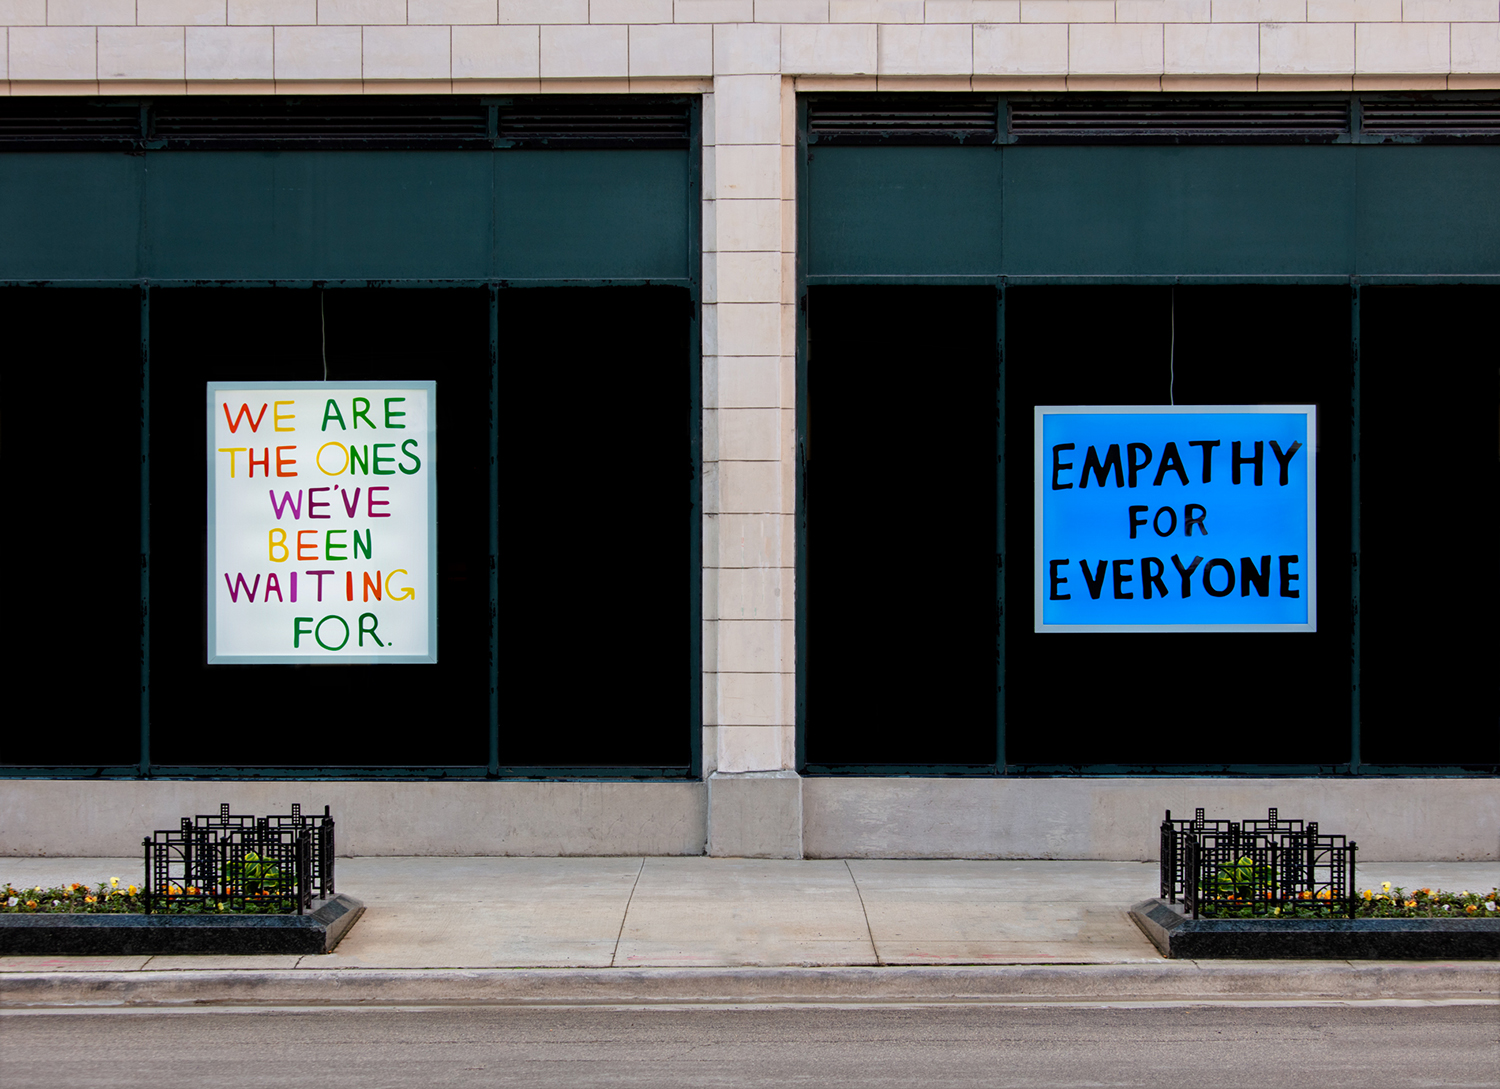 We Are The Ones We've Been Waiting For and Empathy for Everyone